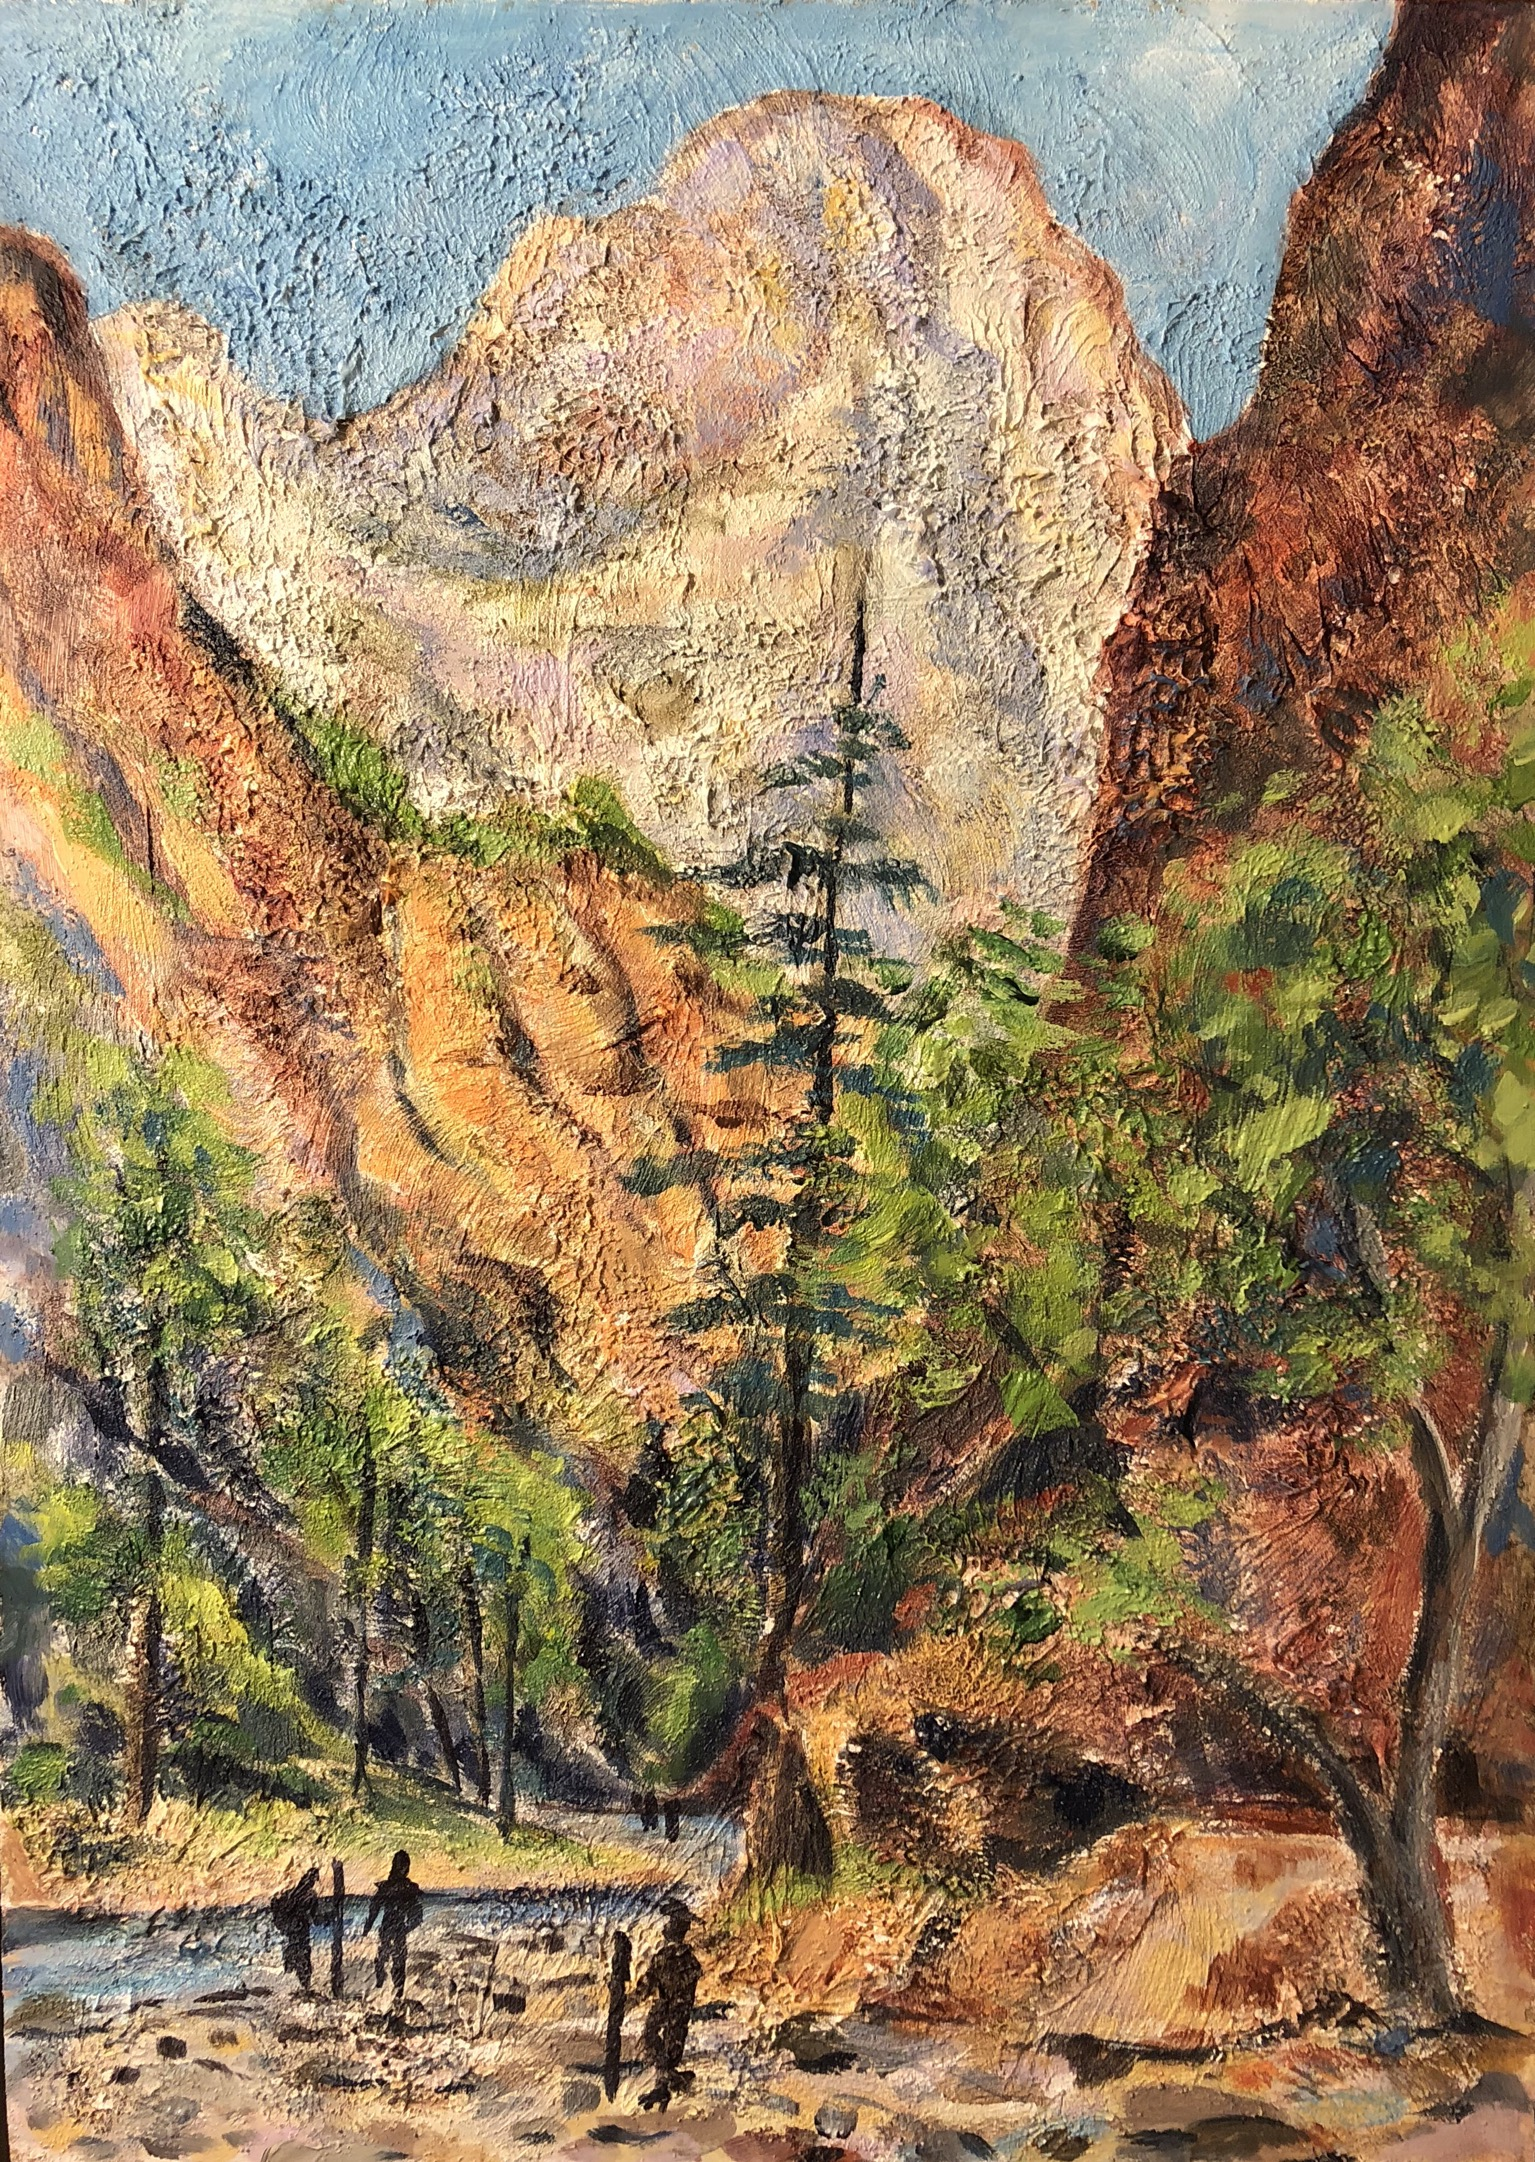 Entry to the Narrows, Zion National Park - acrylic